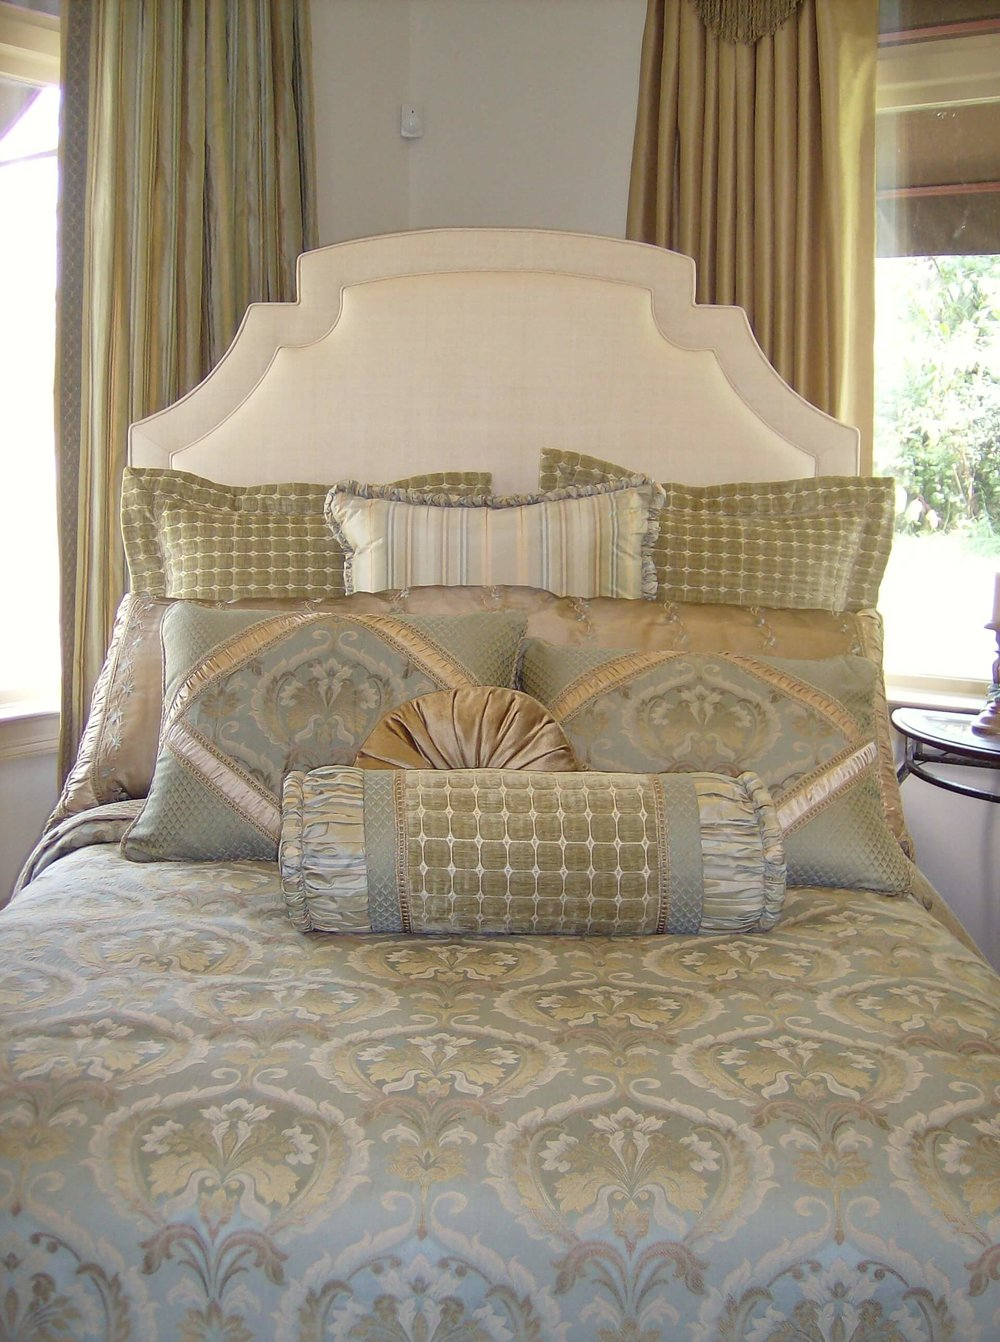 custom-bedding-linens-fabric-atlanta-georgia-2.JPG